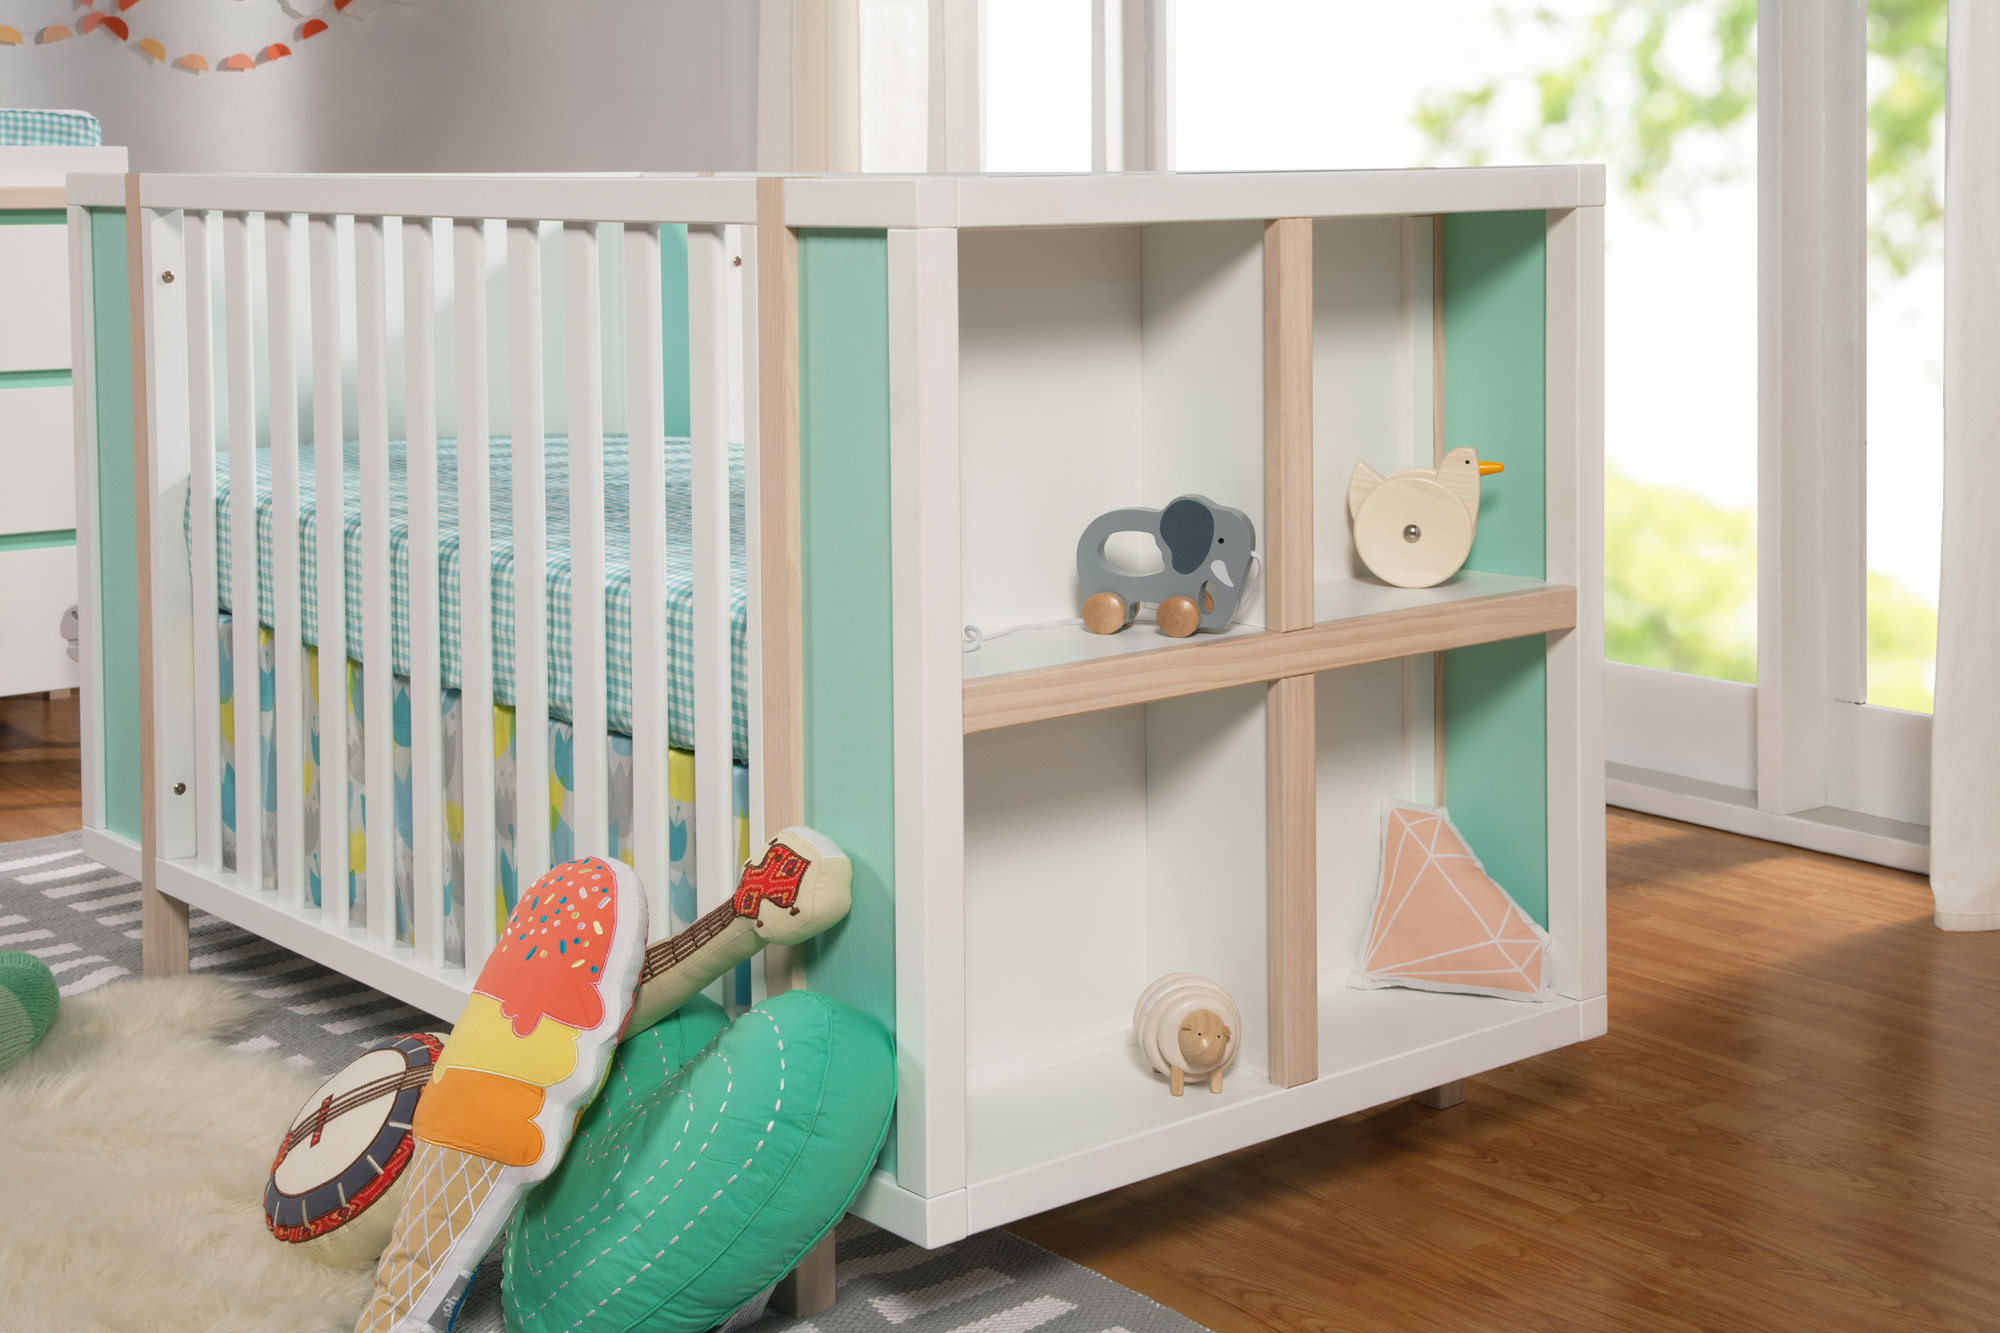 Bingo 3-in-1 Convertible Crib from Babyletto